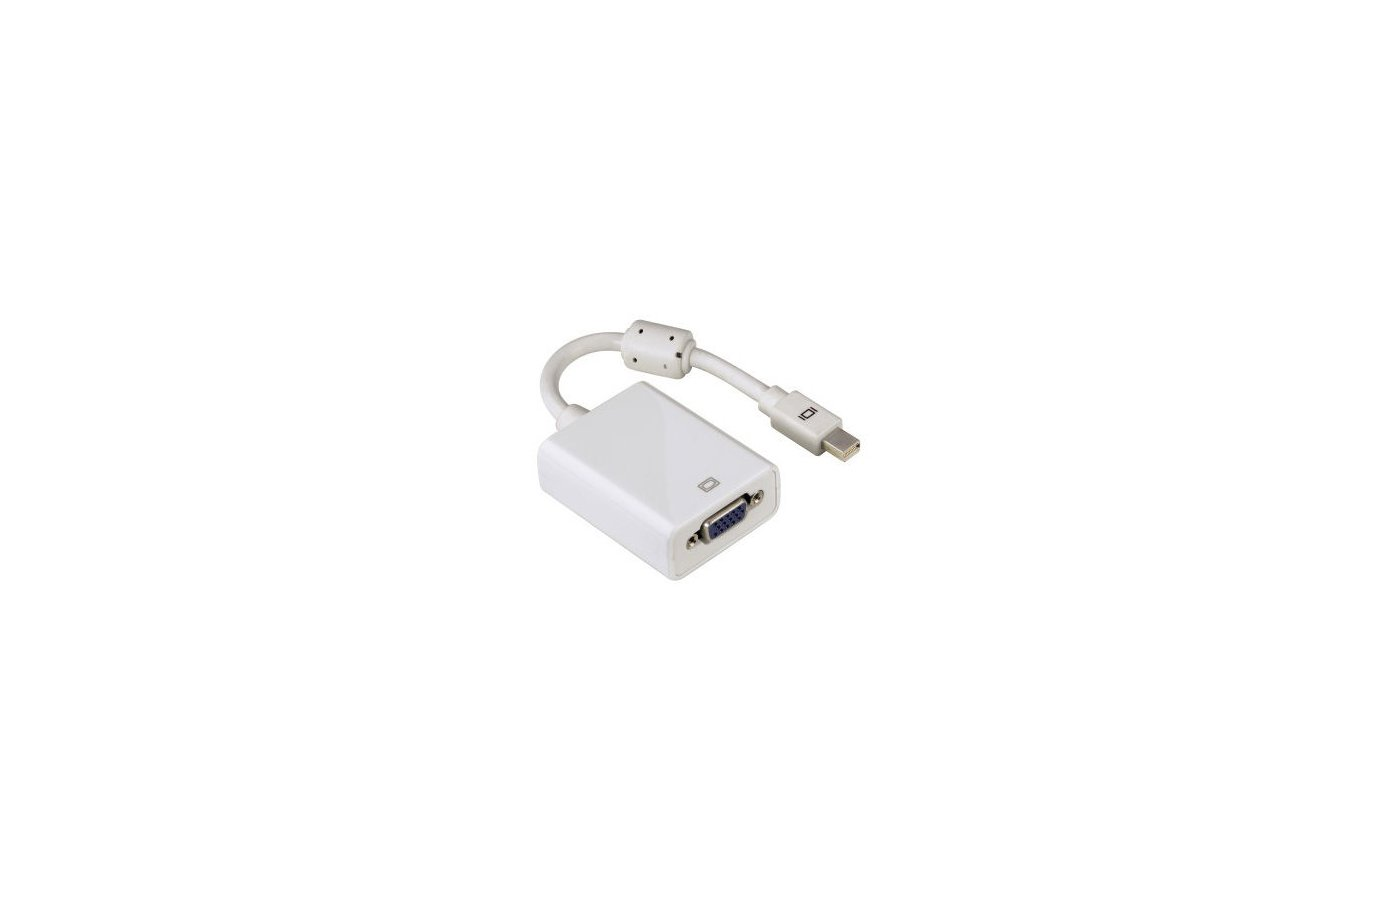 Видео кабель Hama VGA HD15 (f)/mini DisplayPort (m) 0.1м